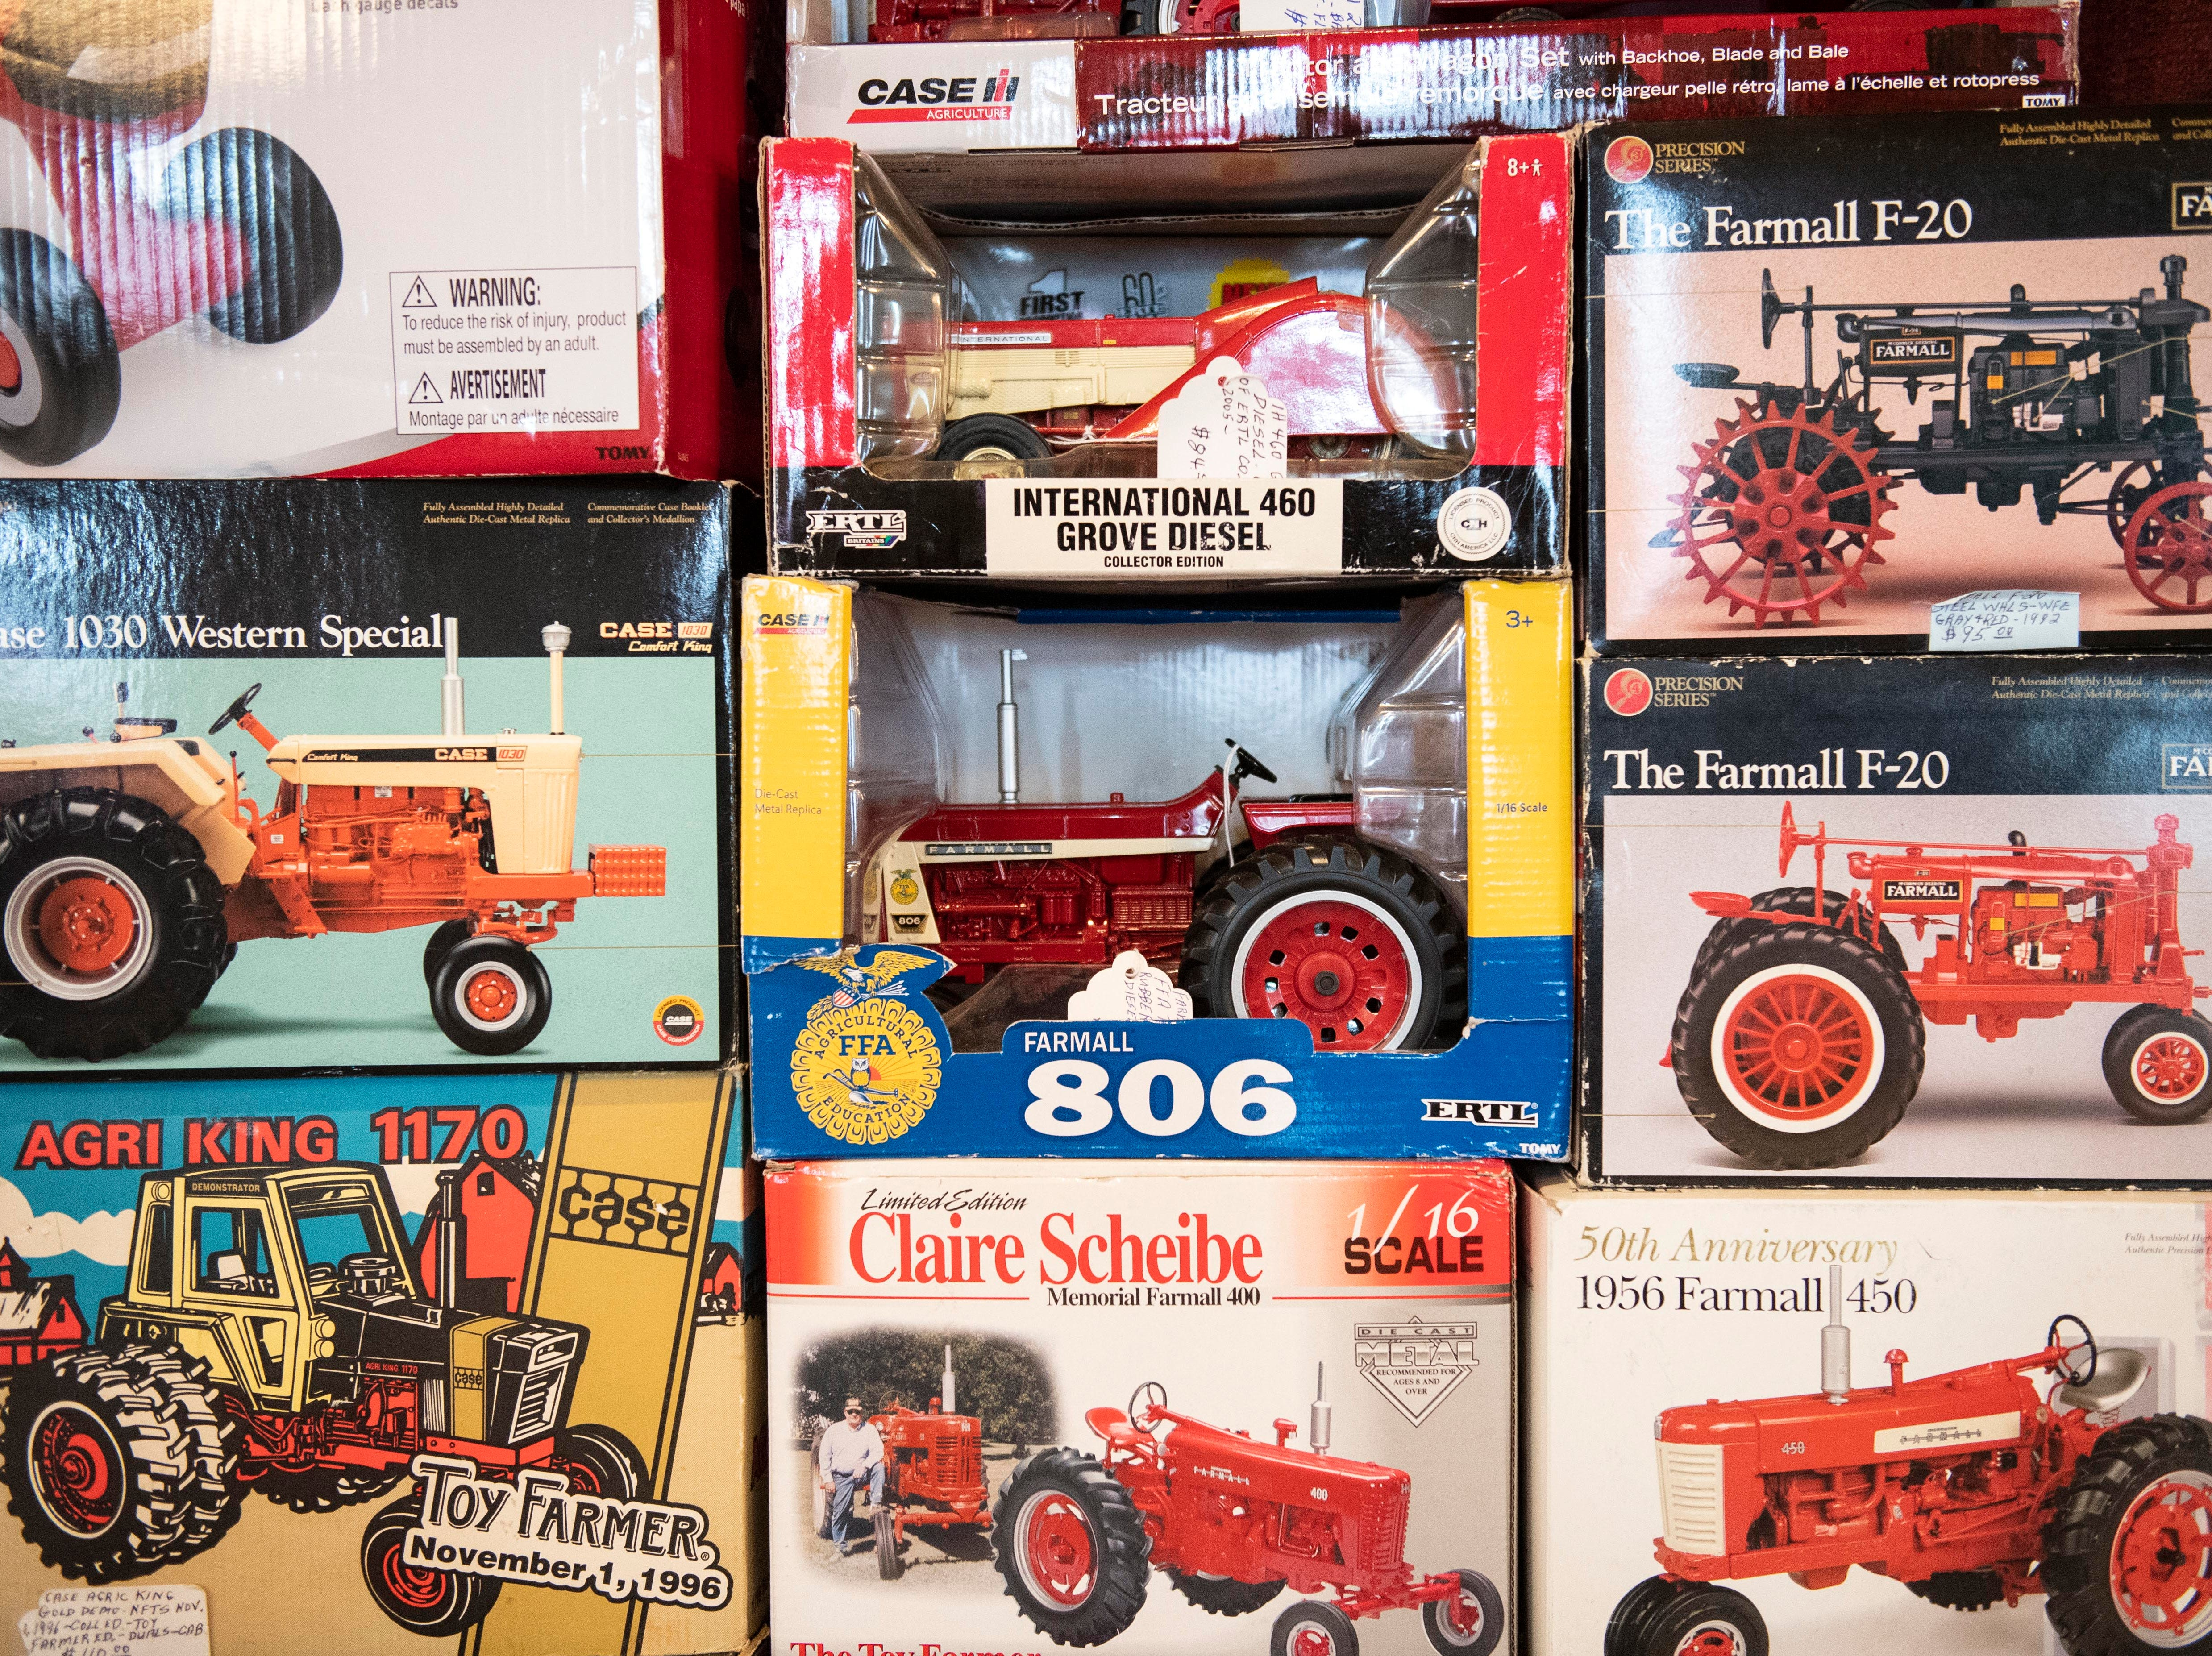 Classic tractor toys are seen stacked up, Tuesday, Jan. 8, 2019. The Keystone Farm Show has nearly 420 vendors and is expected to bring up to 15,000 people to the York Expo Center. The show runs through Thursday, Jan. 10.